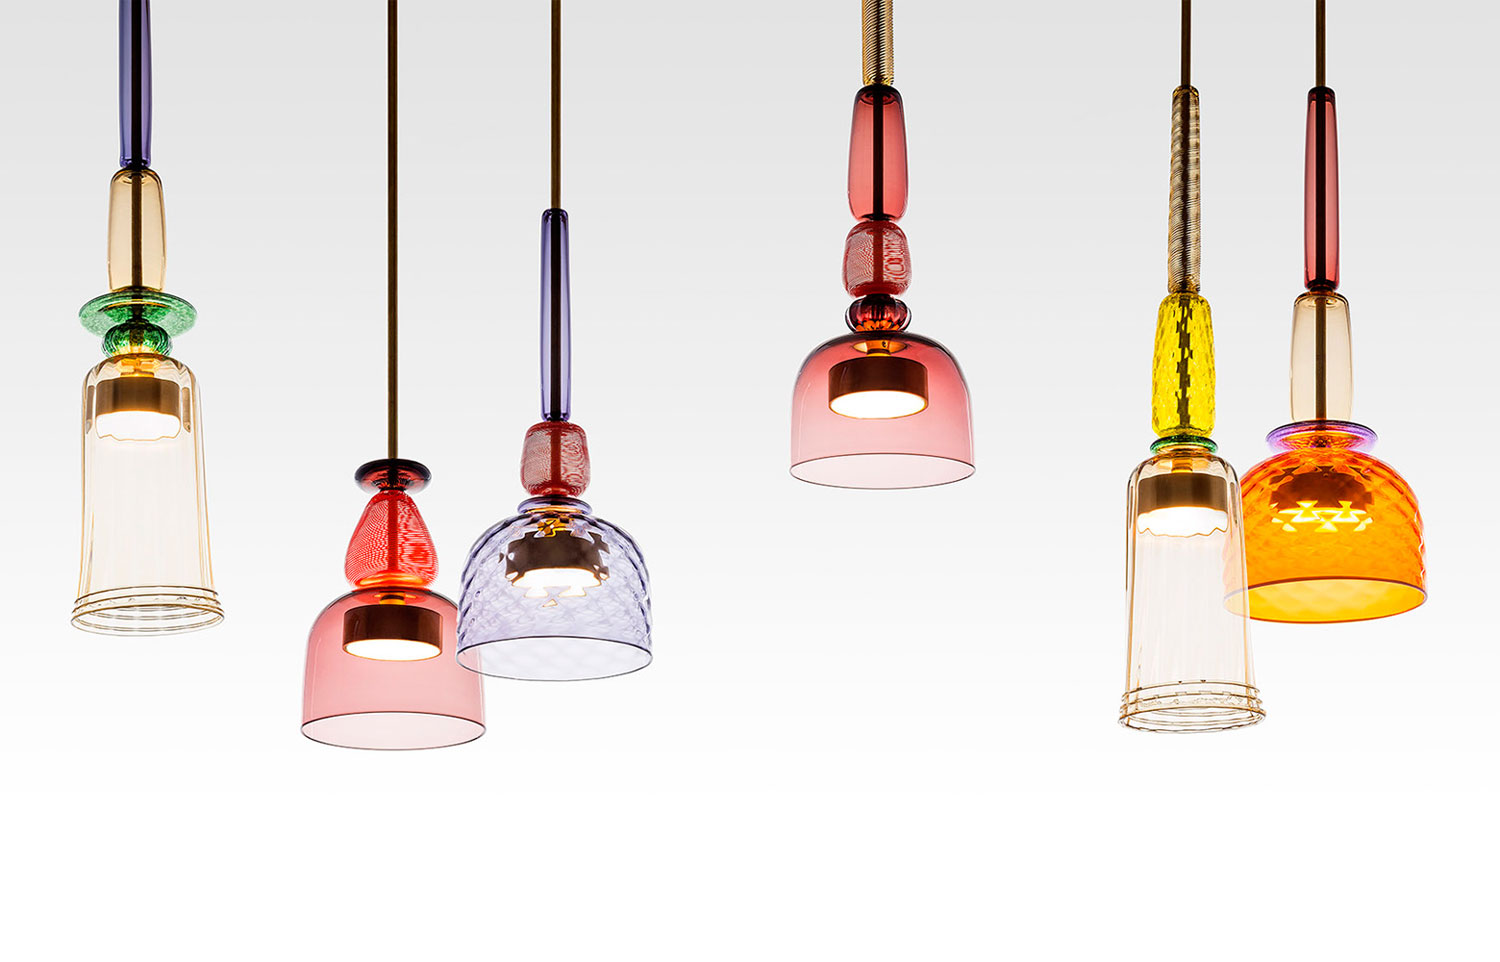 I Flauti Lights by Giopato & Coombes at Maison & Objet 2015 | Yellowtrace